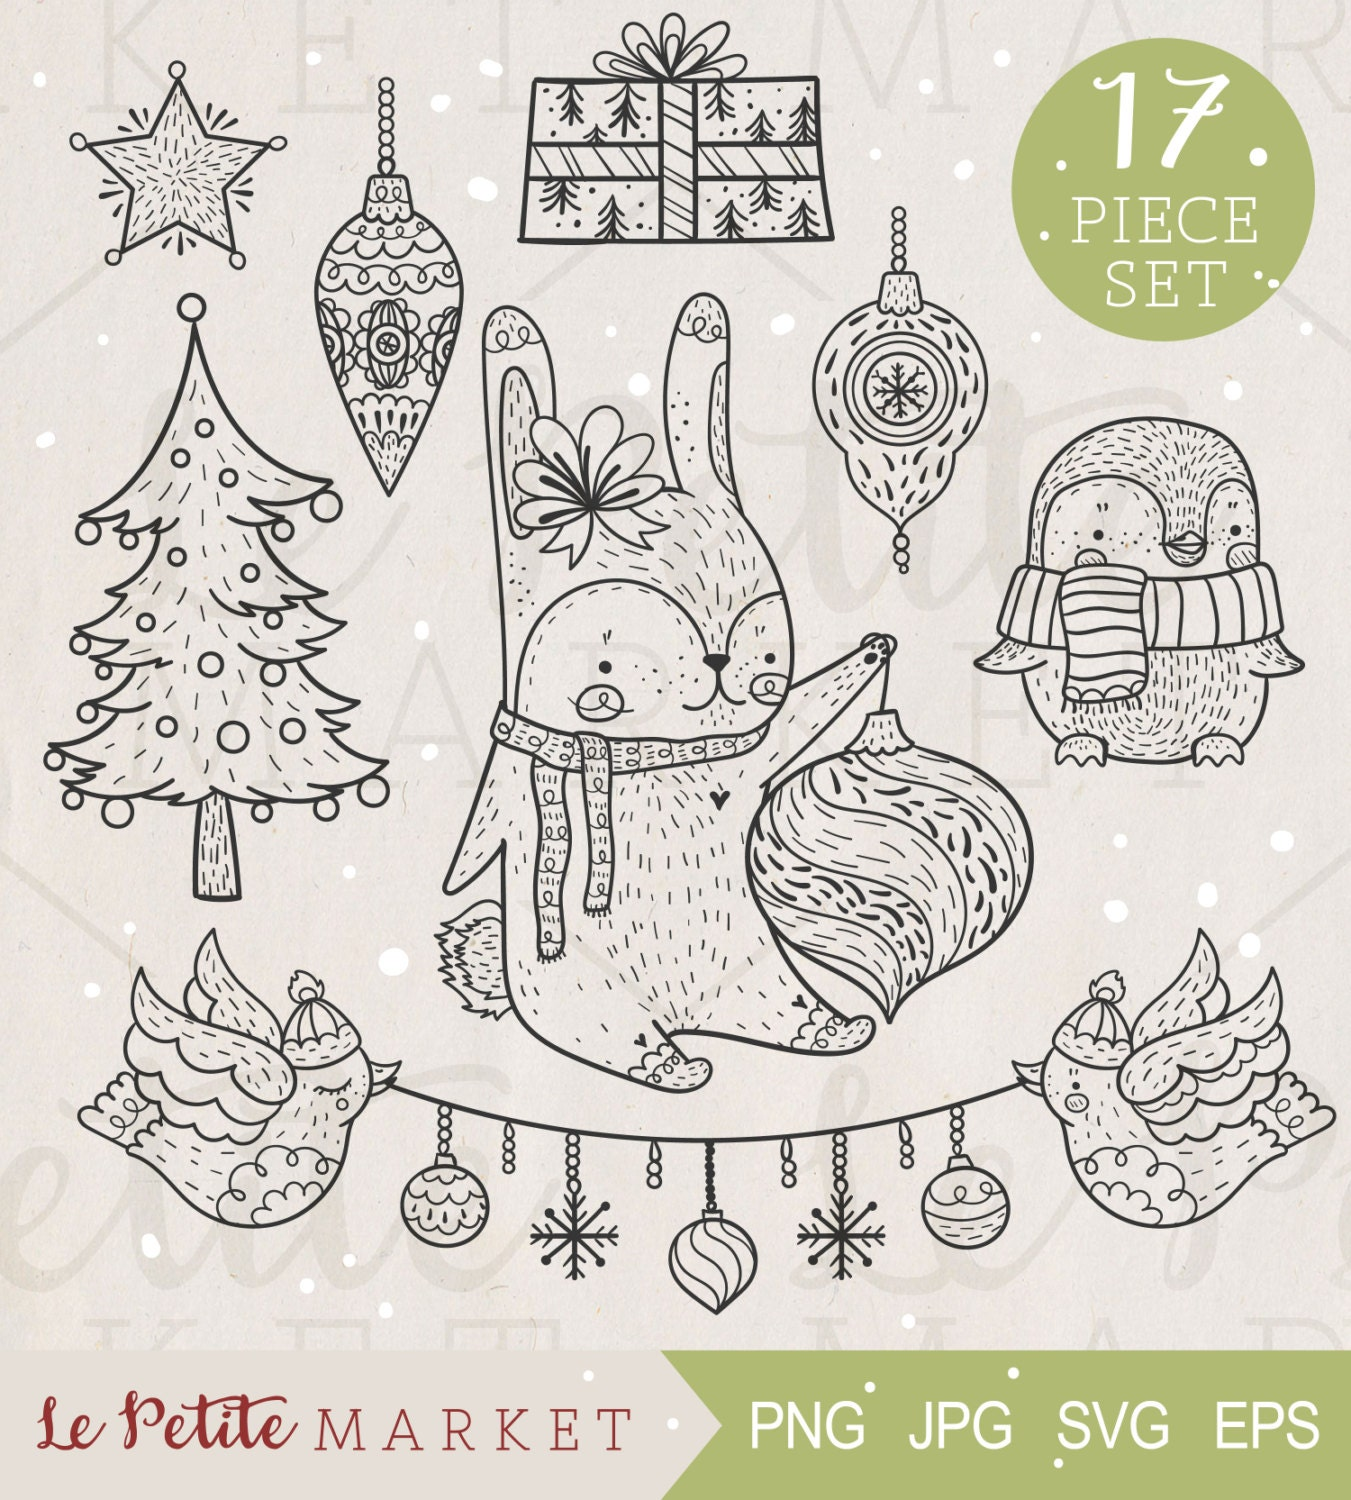 Cute Hand Drawn Woodland Animals Holiday Clip Art Set